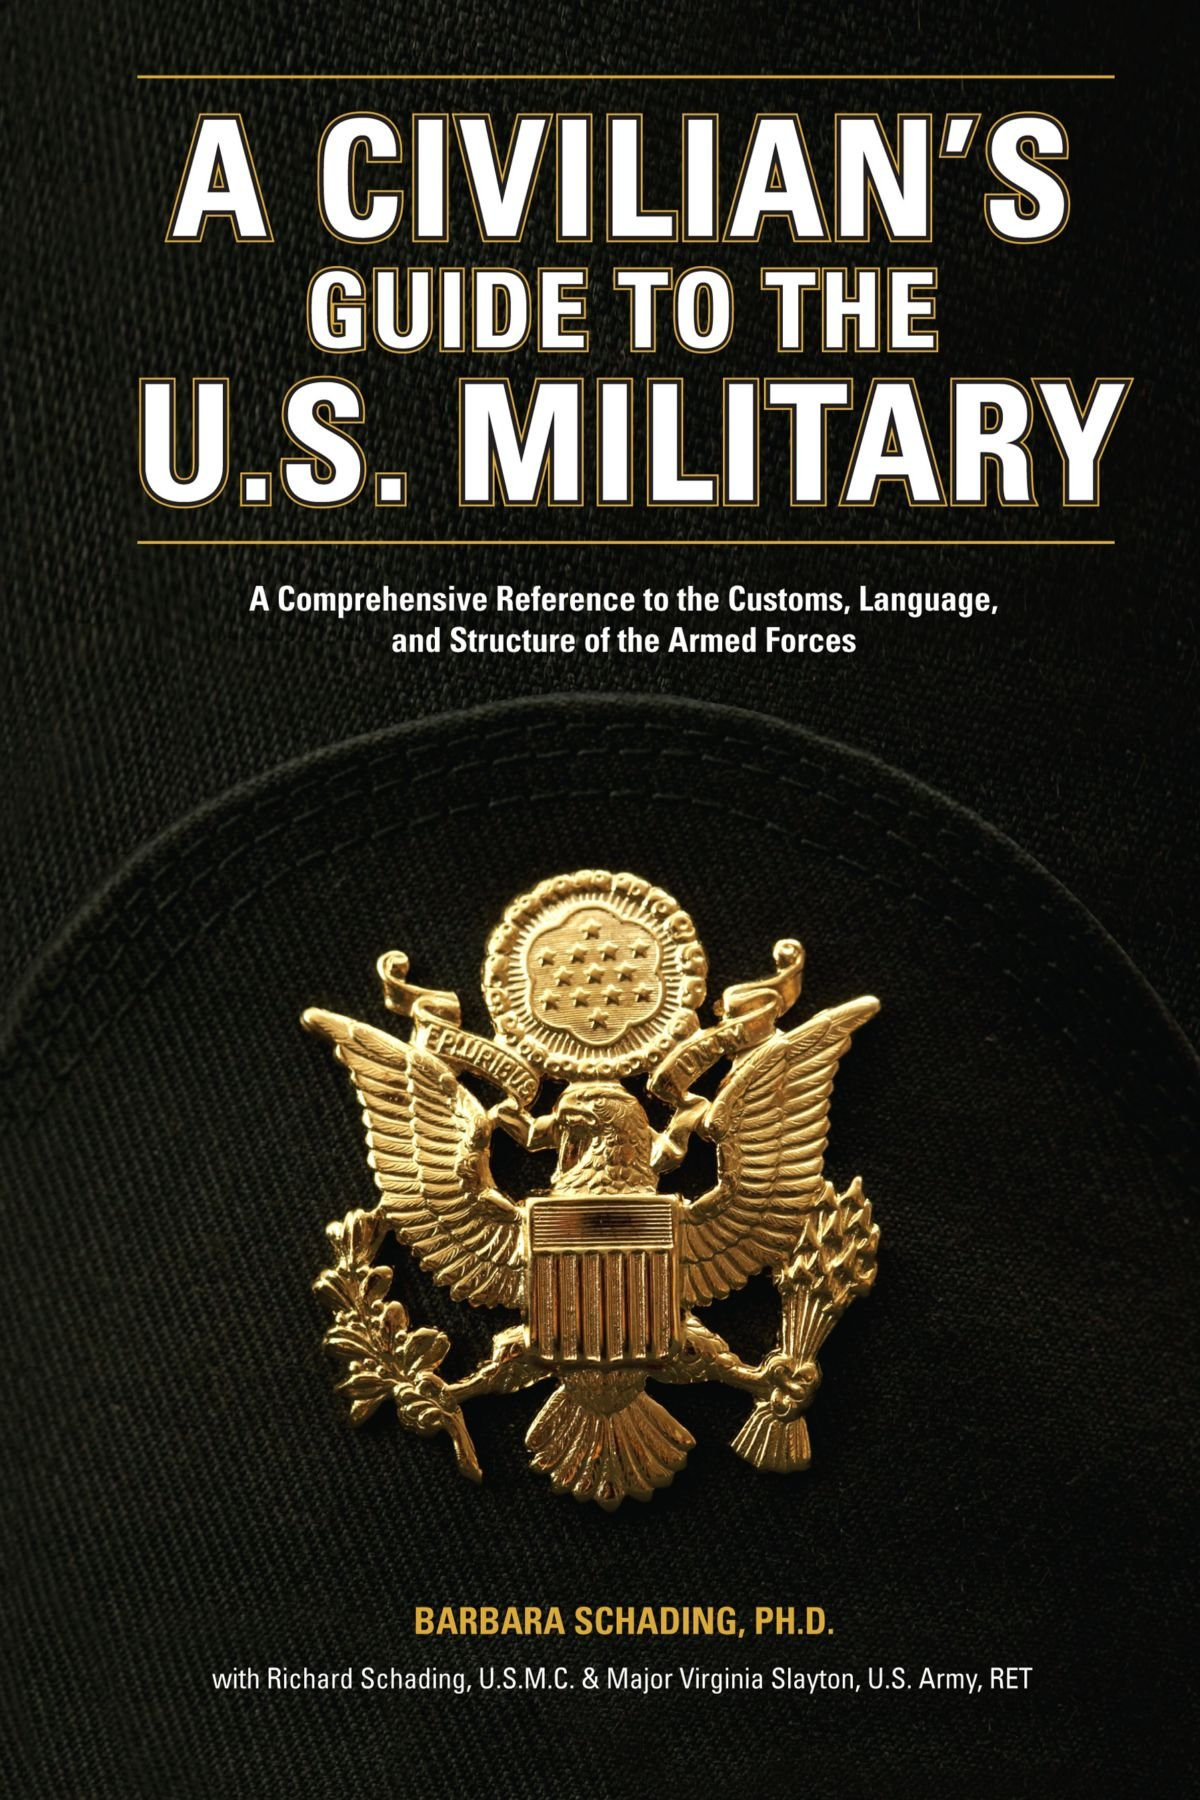 A Civilian's Guide to the U.S. Military: A comprehensive reference to the customs, language and structure of the Armed Forces by Writer's Digest